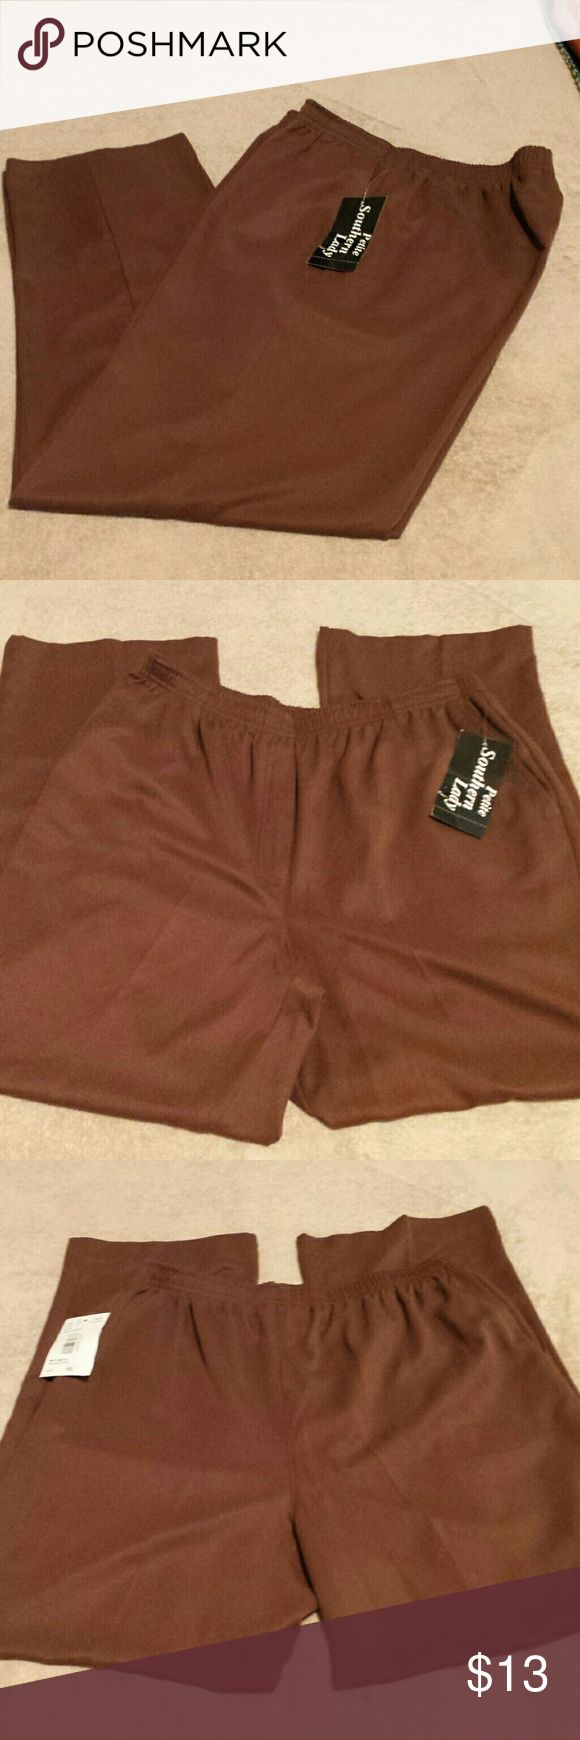 Southern Lady Brown Slacks. NWT. Size 12P Soft 100% polyester slacks by Southern Lady Petite. In new condition. No holes, stains, pills, pulls, or flaws. New with tag. Southern Lady Pants